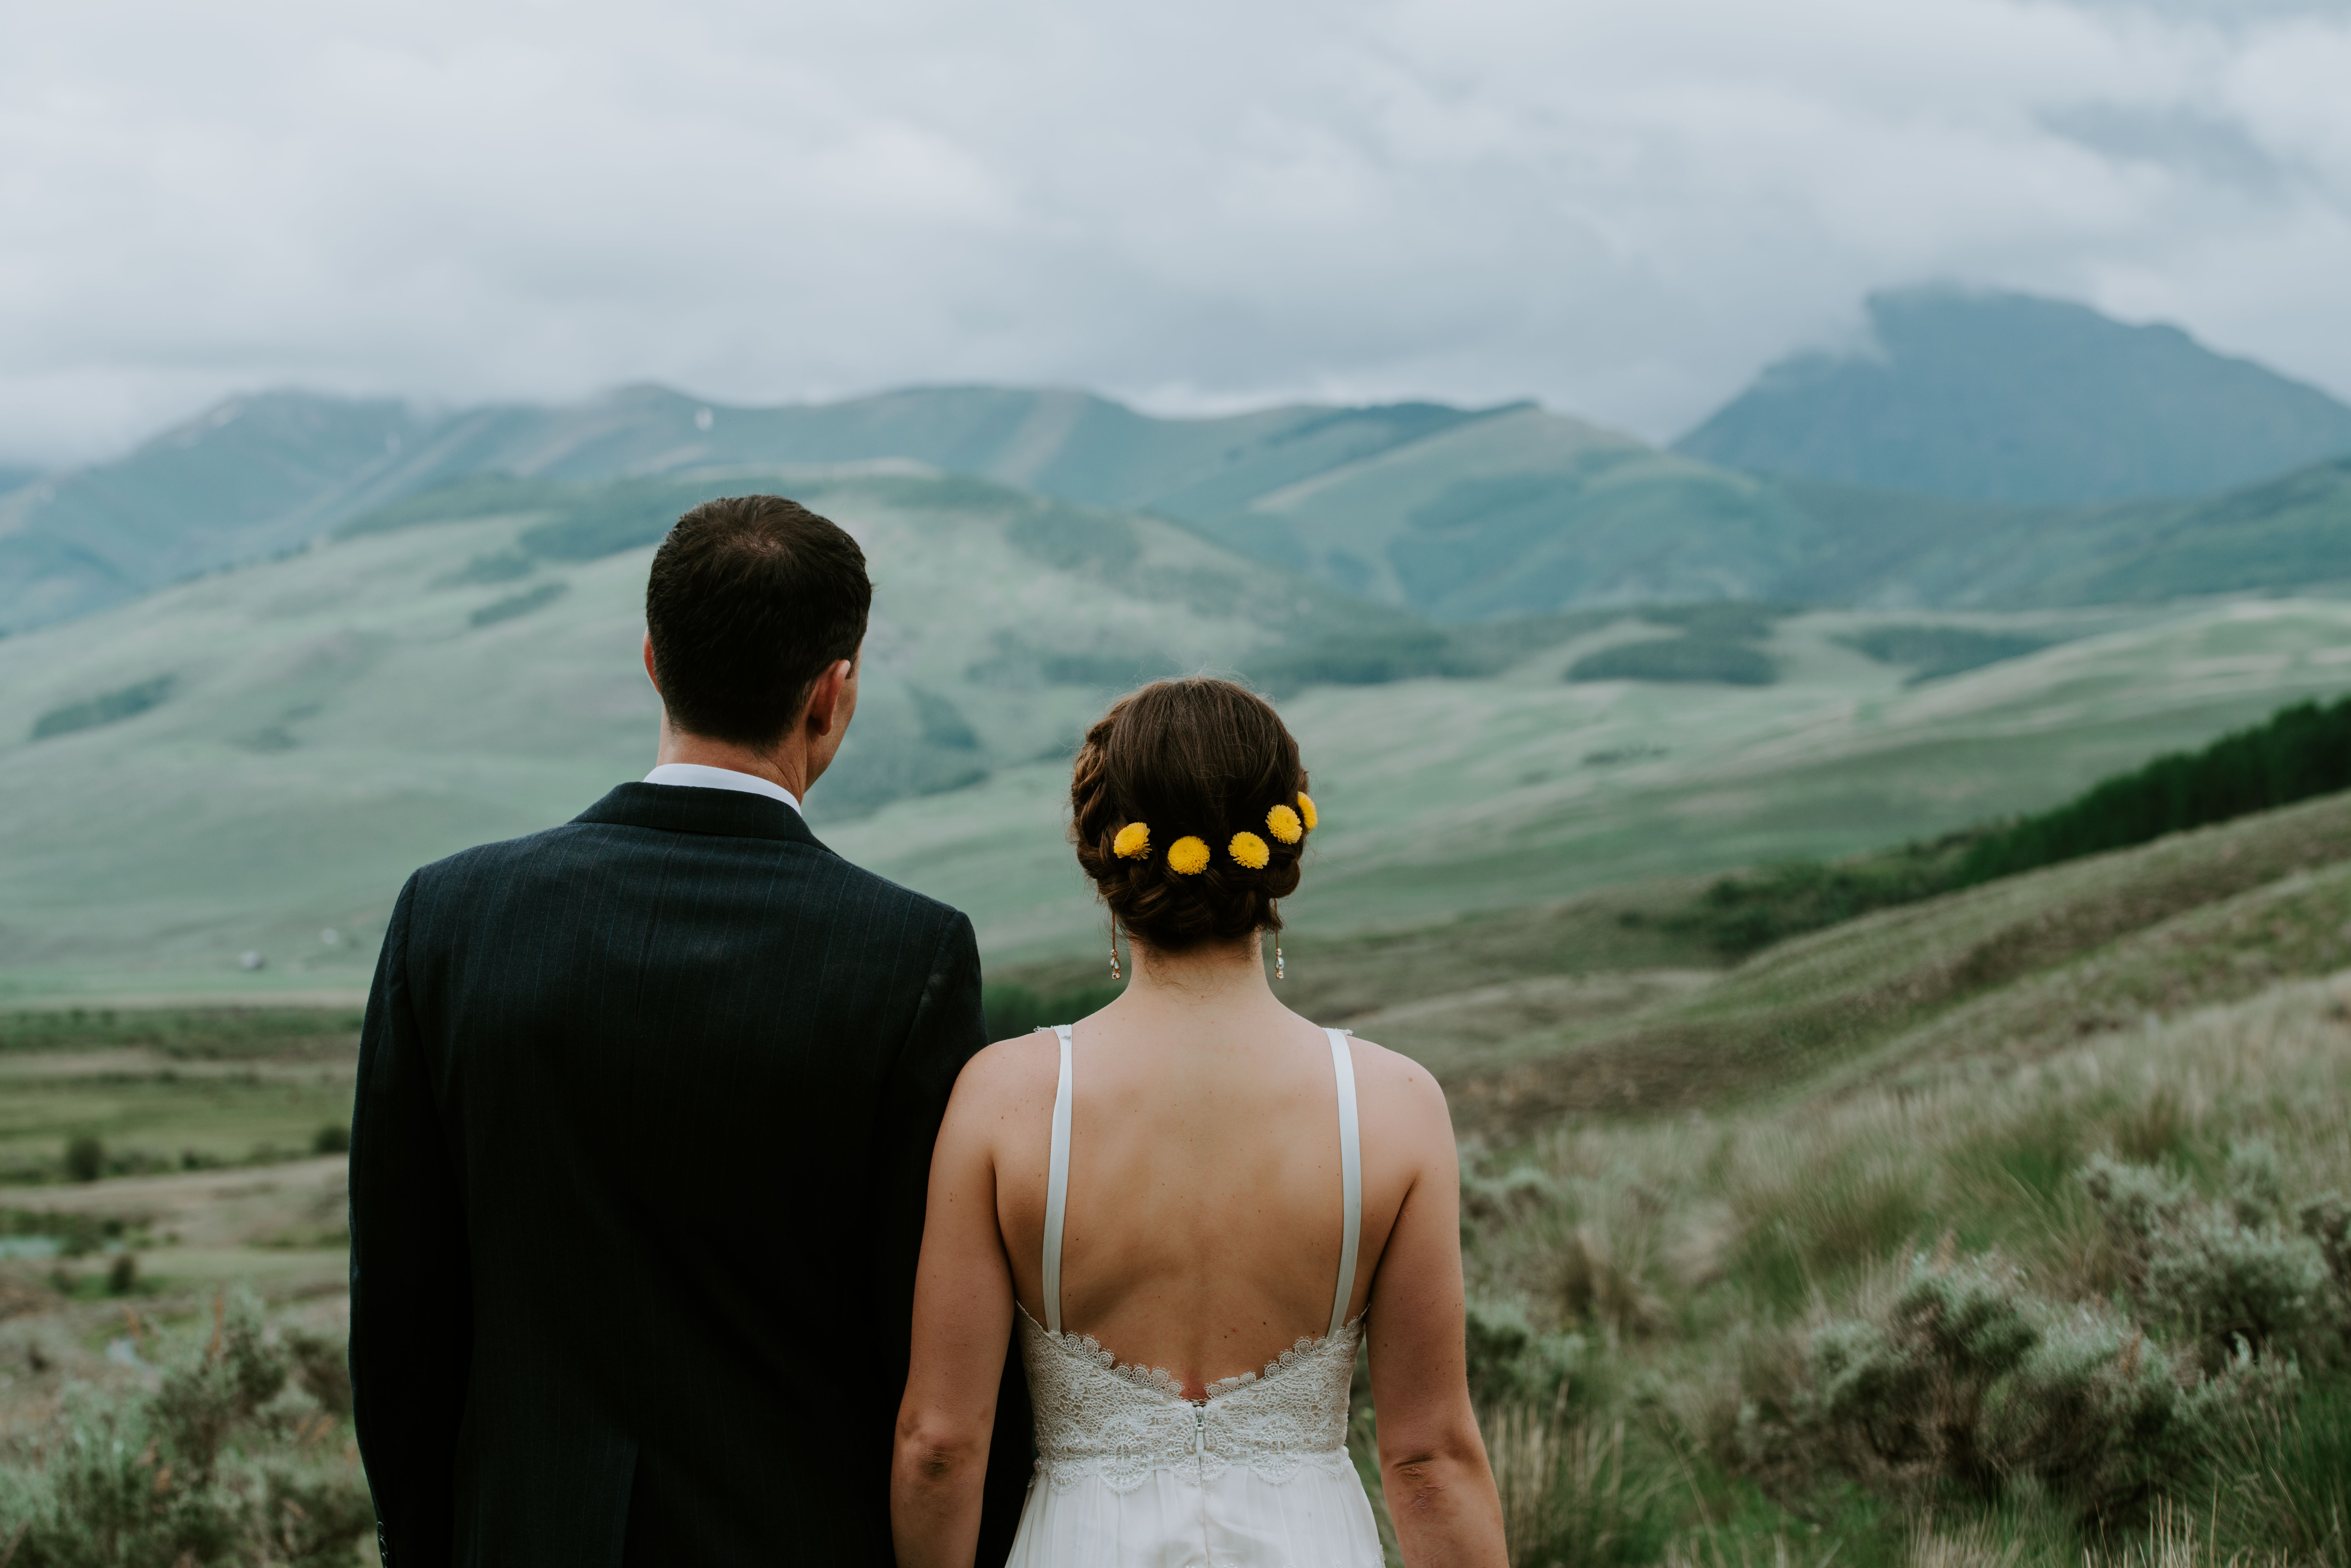 Laura_Alexe_Wedding_Crested_Butte_MegONeillPhotography__180616_40